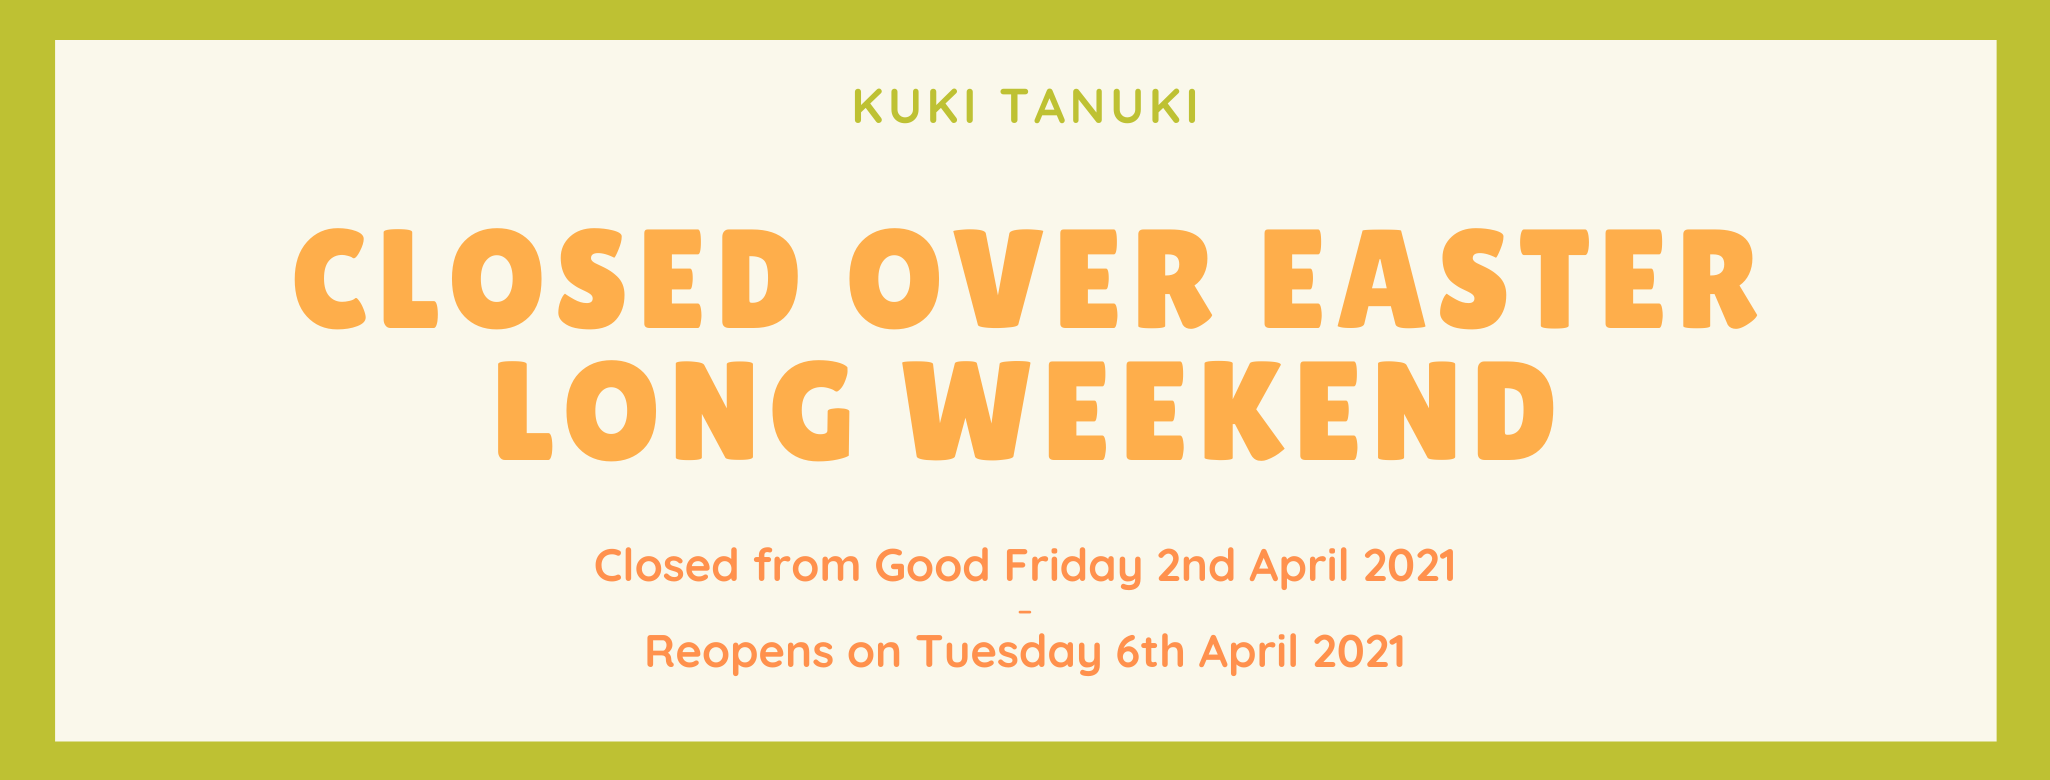 Kuki Tanuki Easter trading hours- closed from Good Friday 02/04/2021 and reopens on Tuesday 06/04/2021